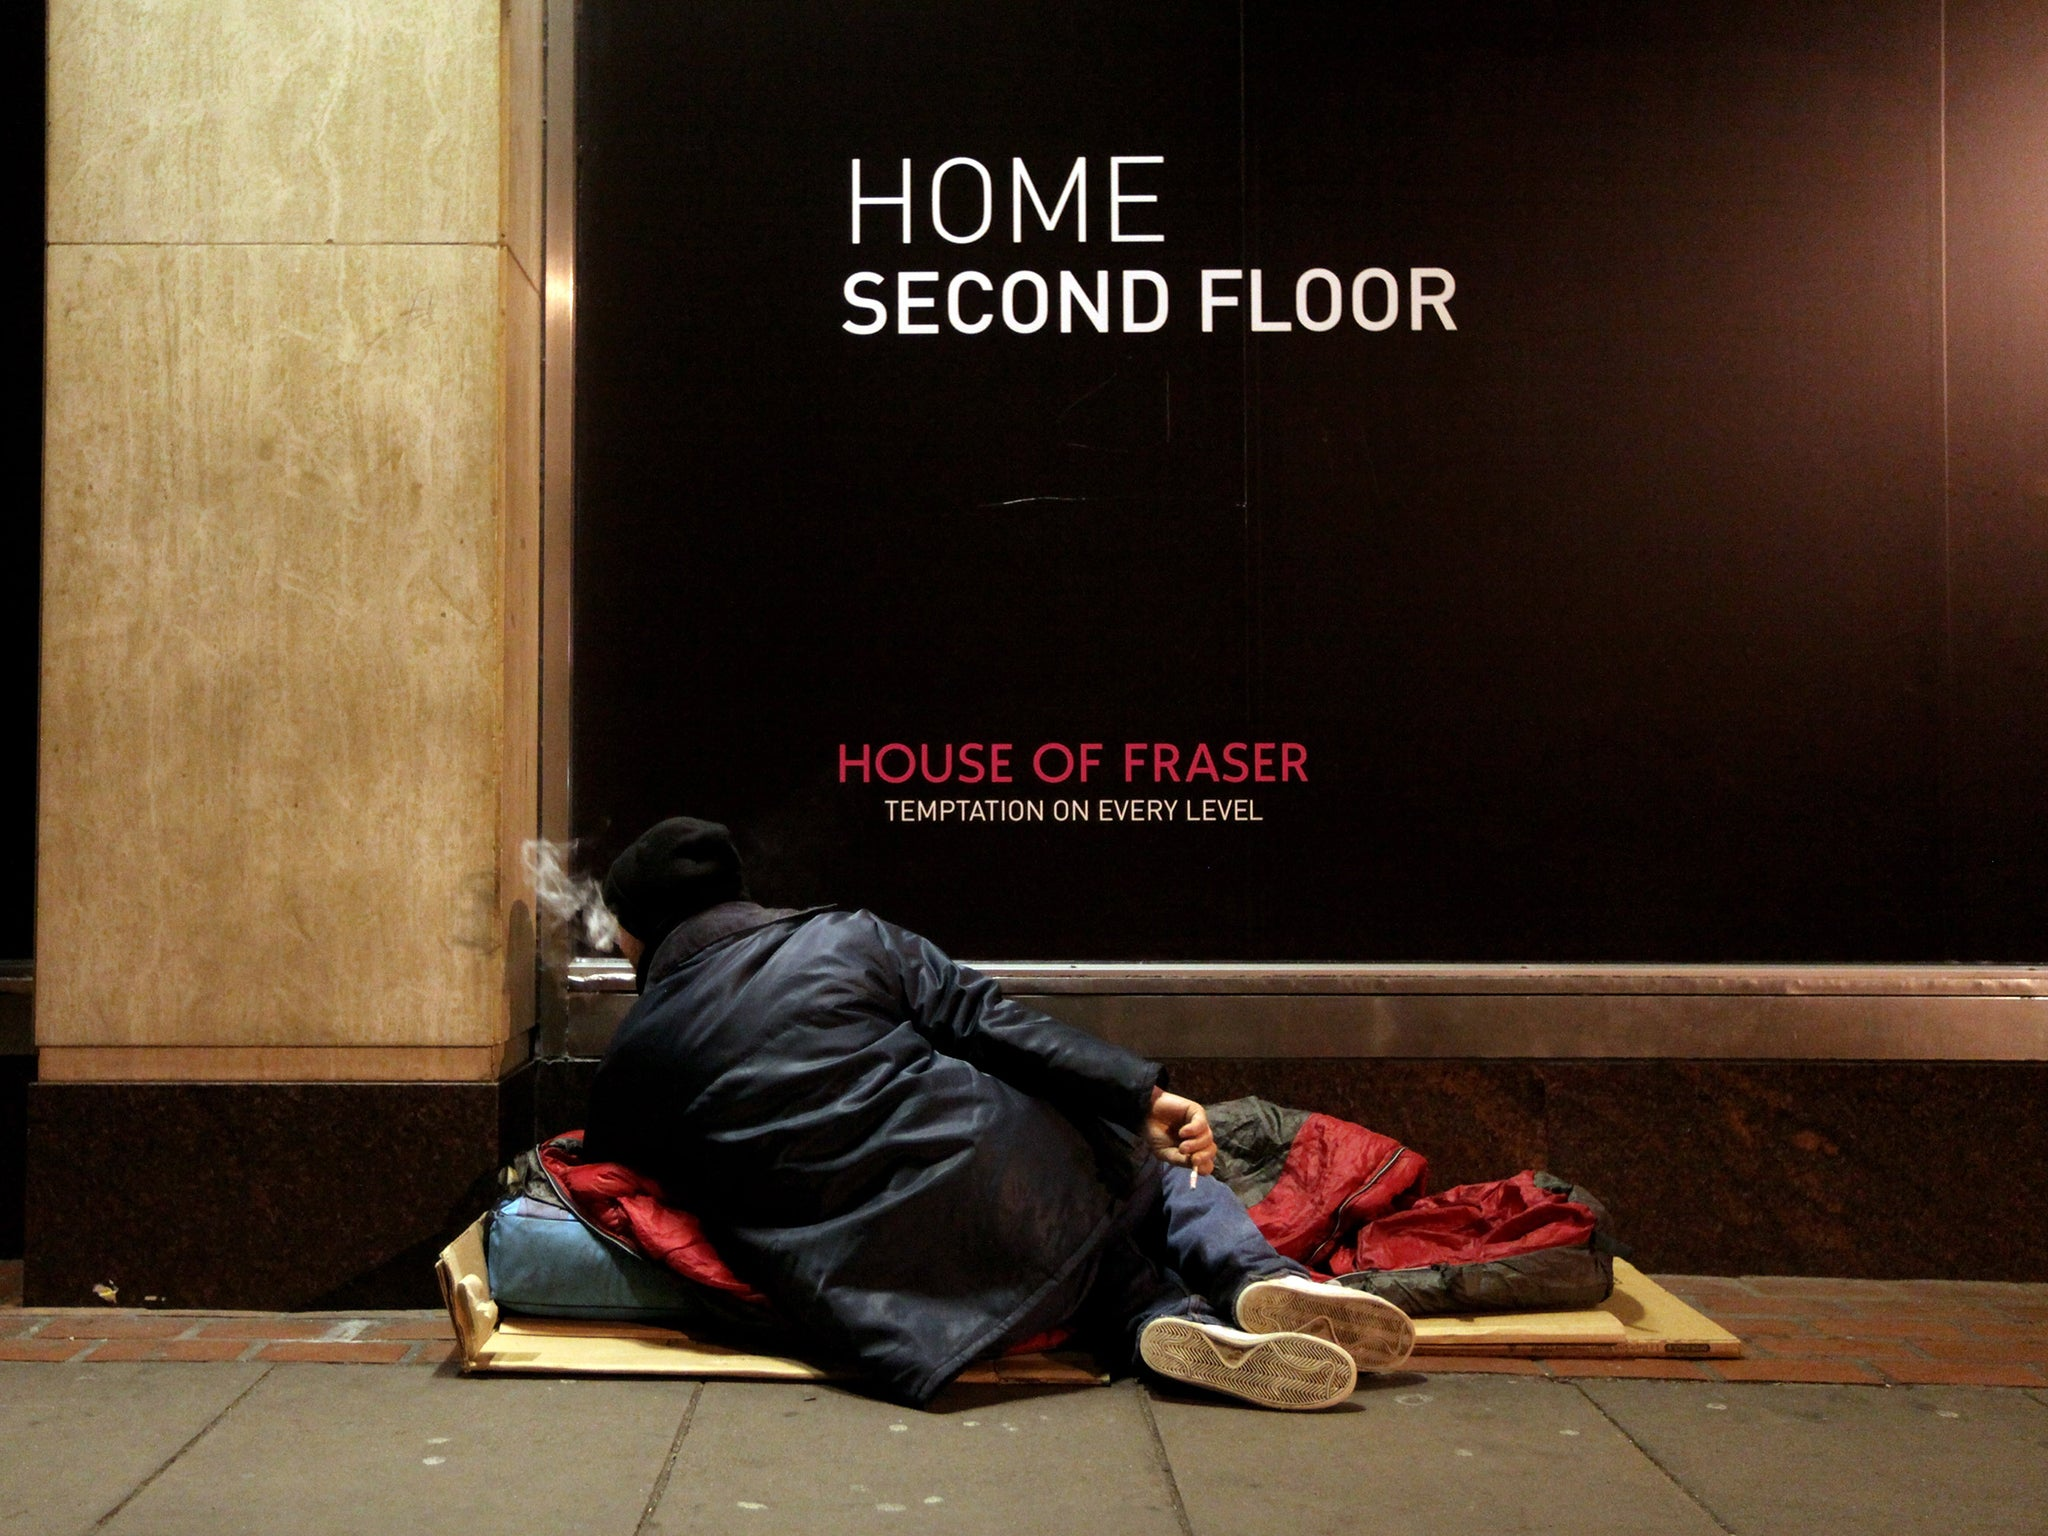 proposal the end homelessness in americca America's top 99 problems 14886k hamilton nolan  low wage dead end jobs 39 everything too expensive  homelessness 19 rampant obesity 18.